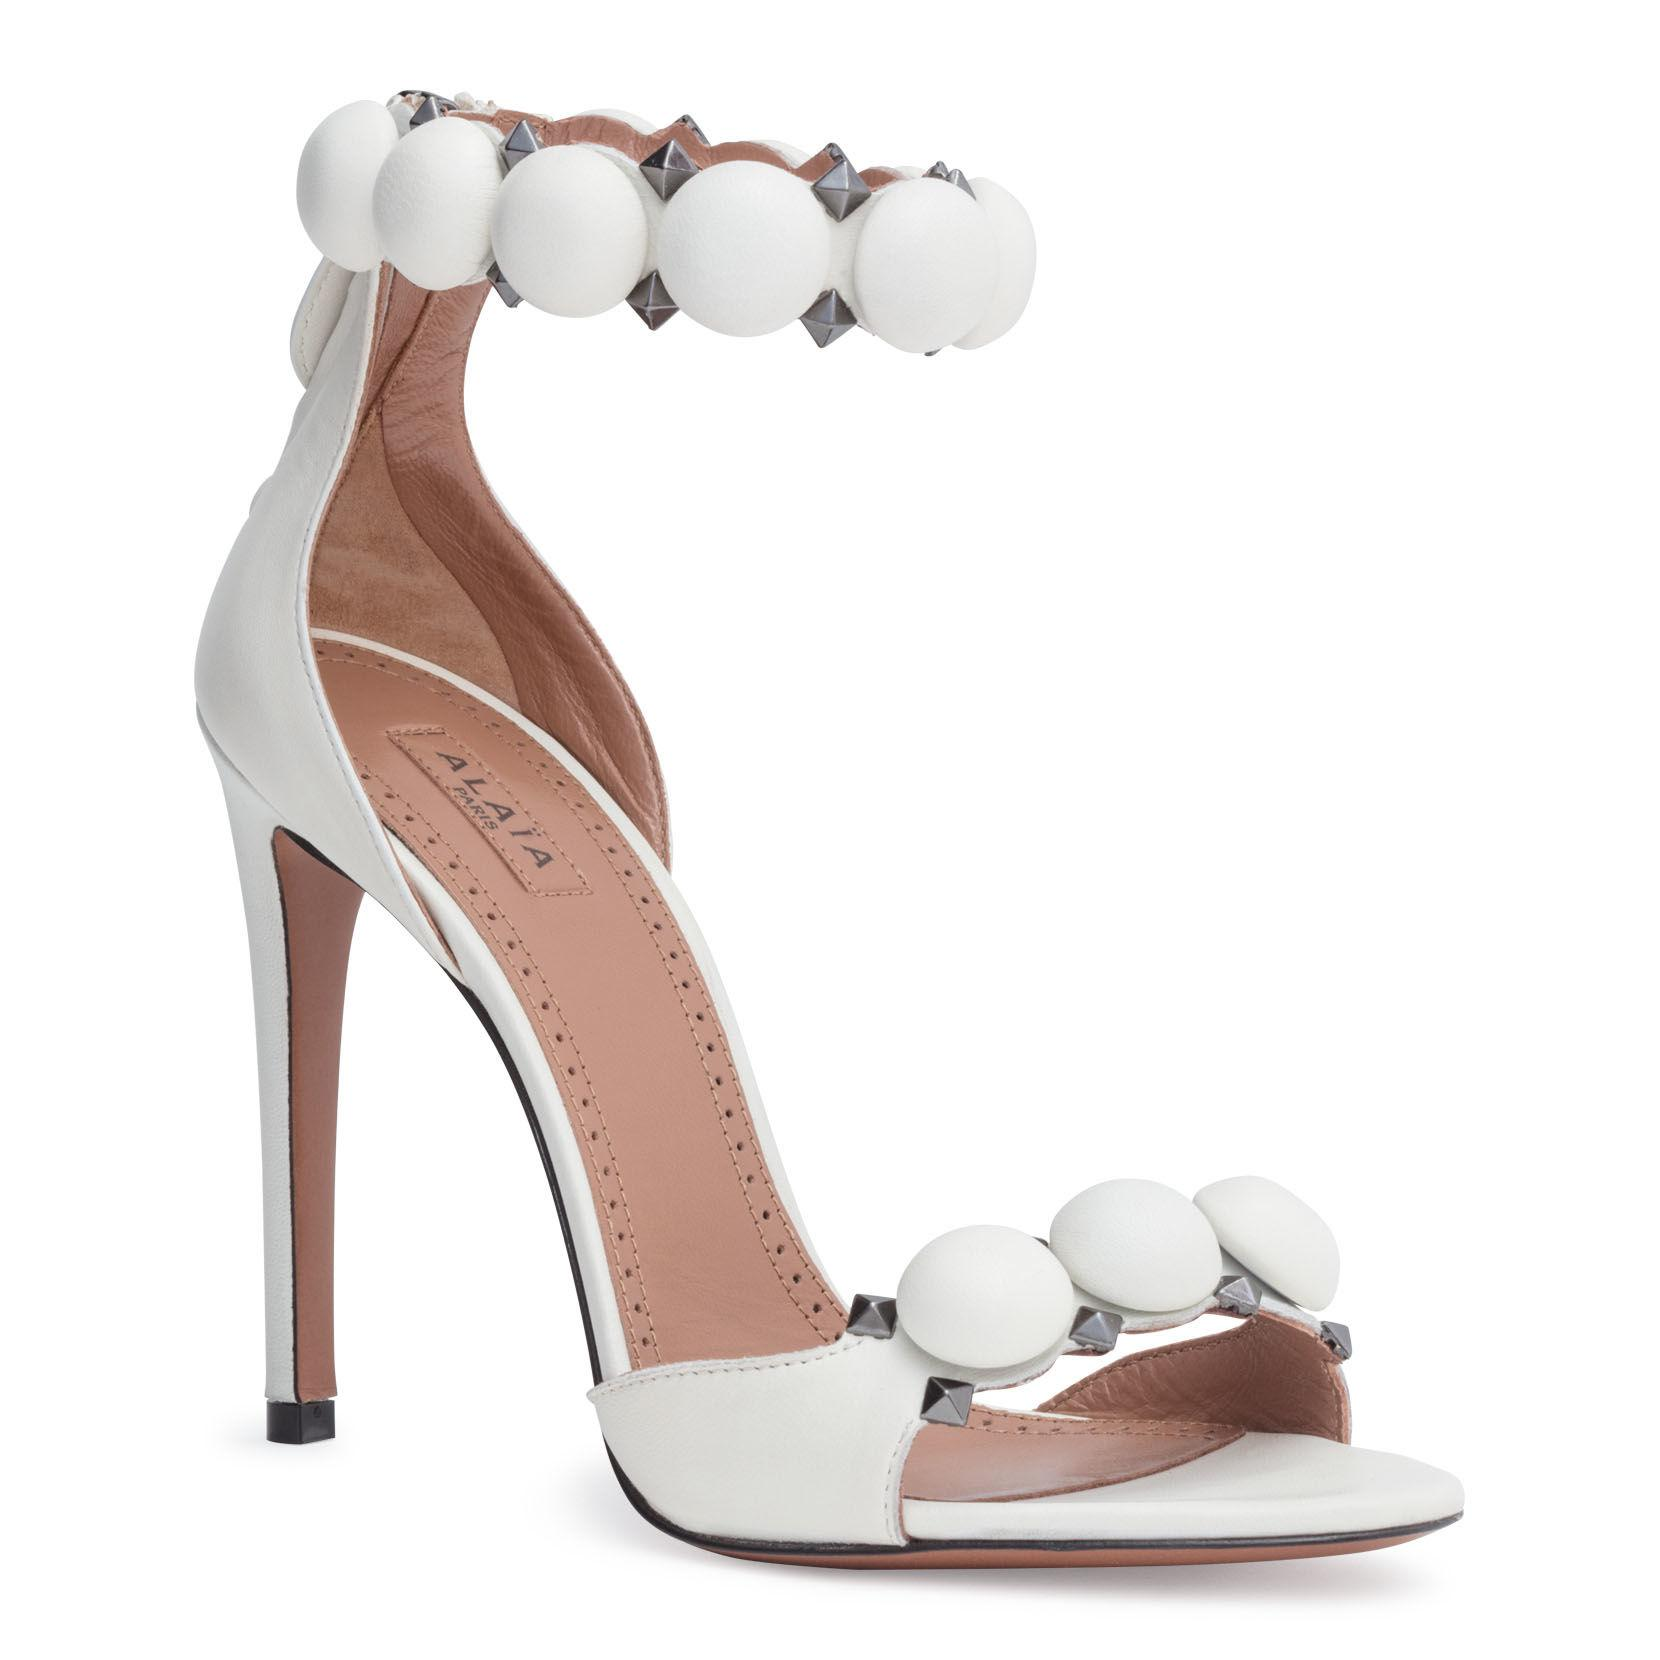 02f476975251 Lyst - Alaïa White Leather Bomb Sandals in White